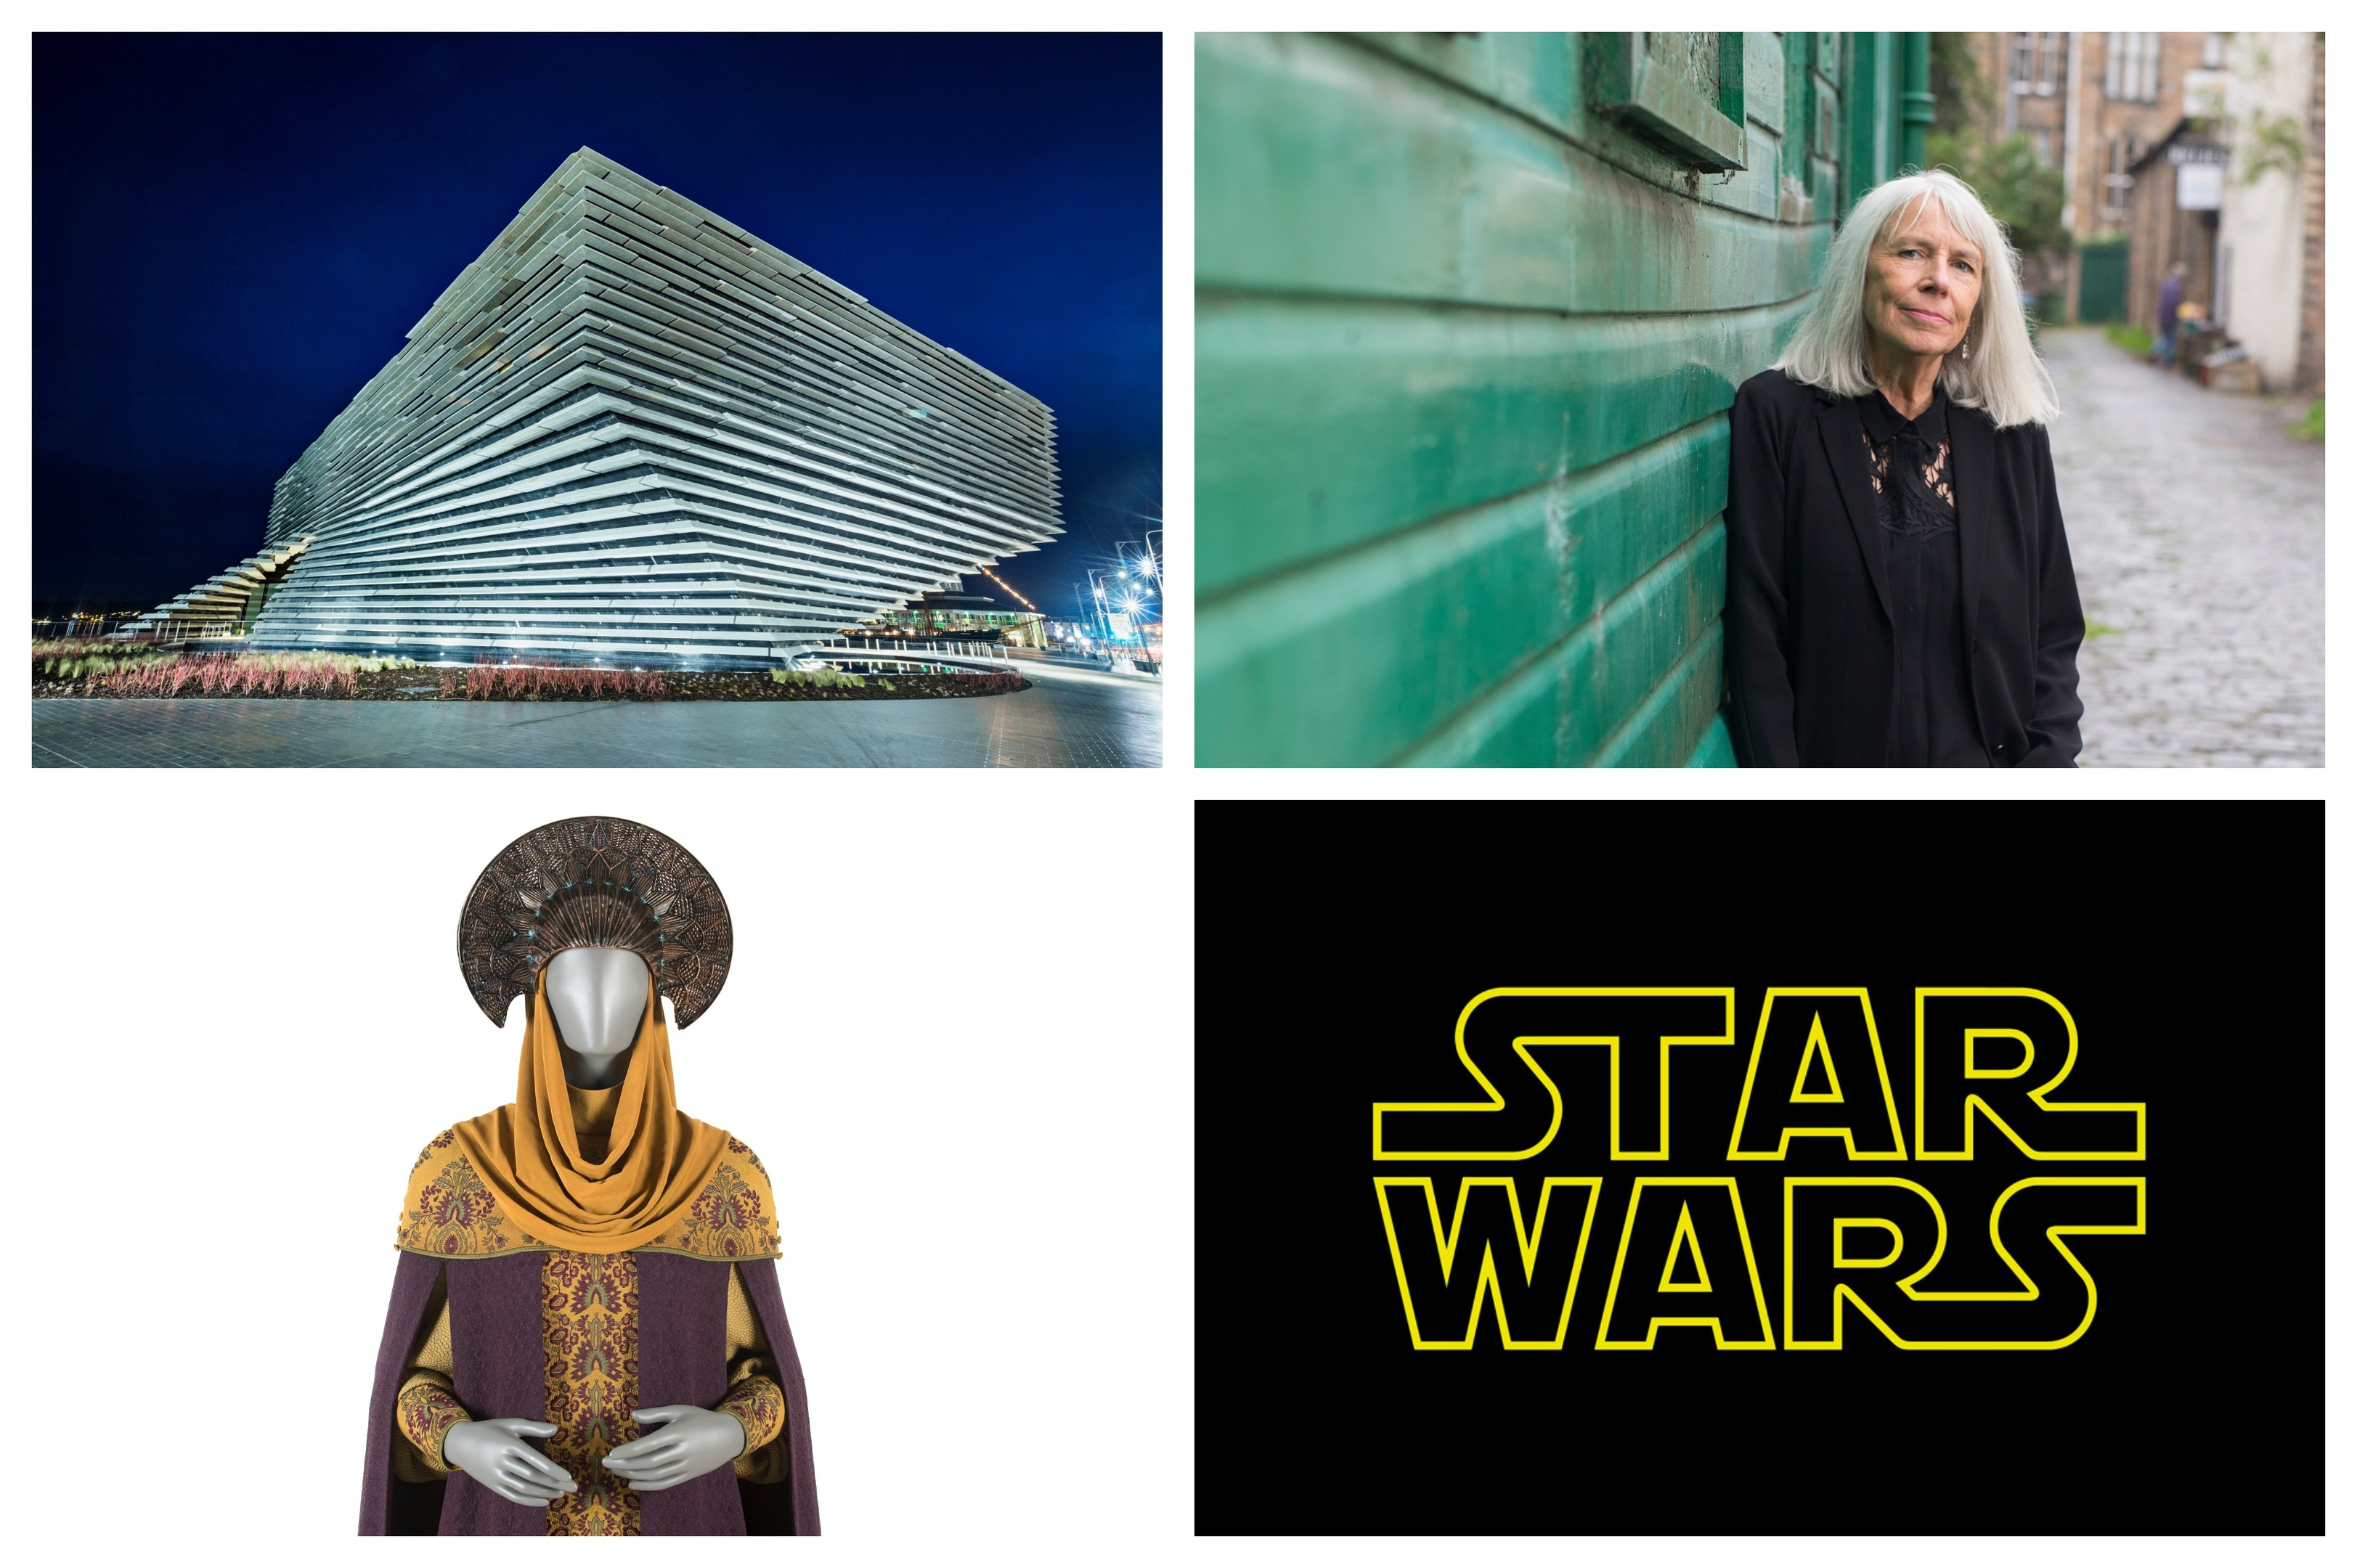 Trisha Bigger's Star Wars gown will be on display at the V&A.